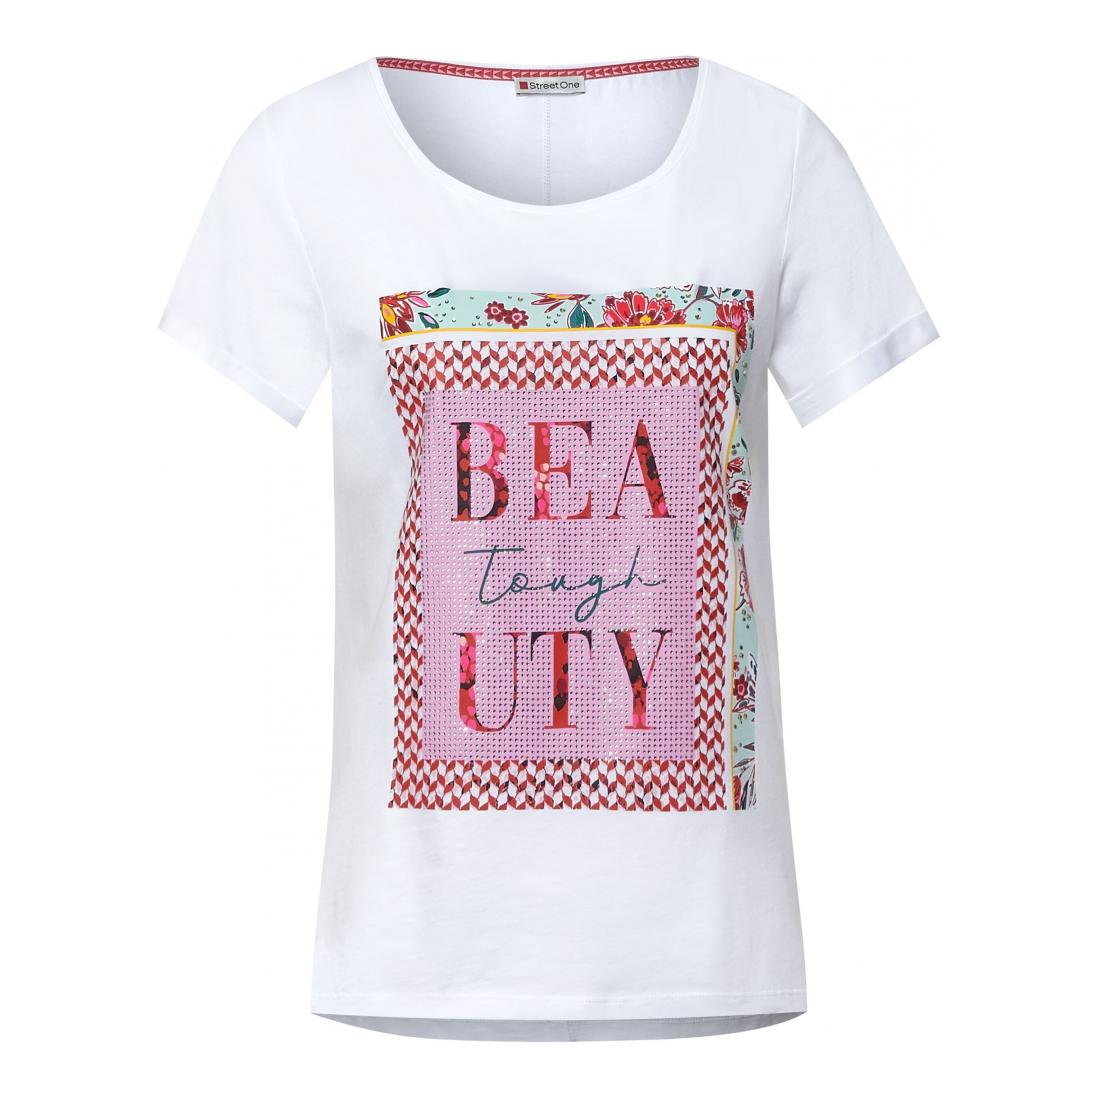 Street One T-Shirt Damen multicolor partprint shir